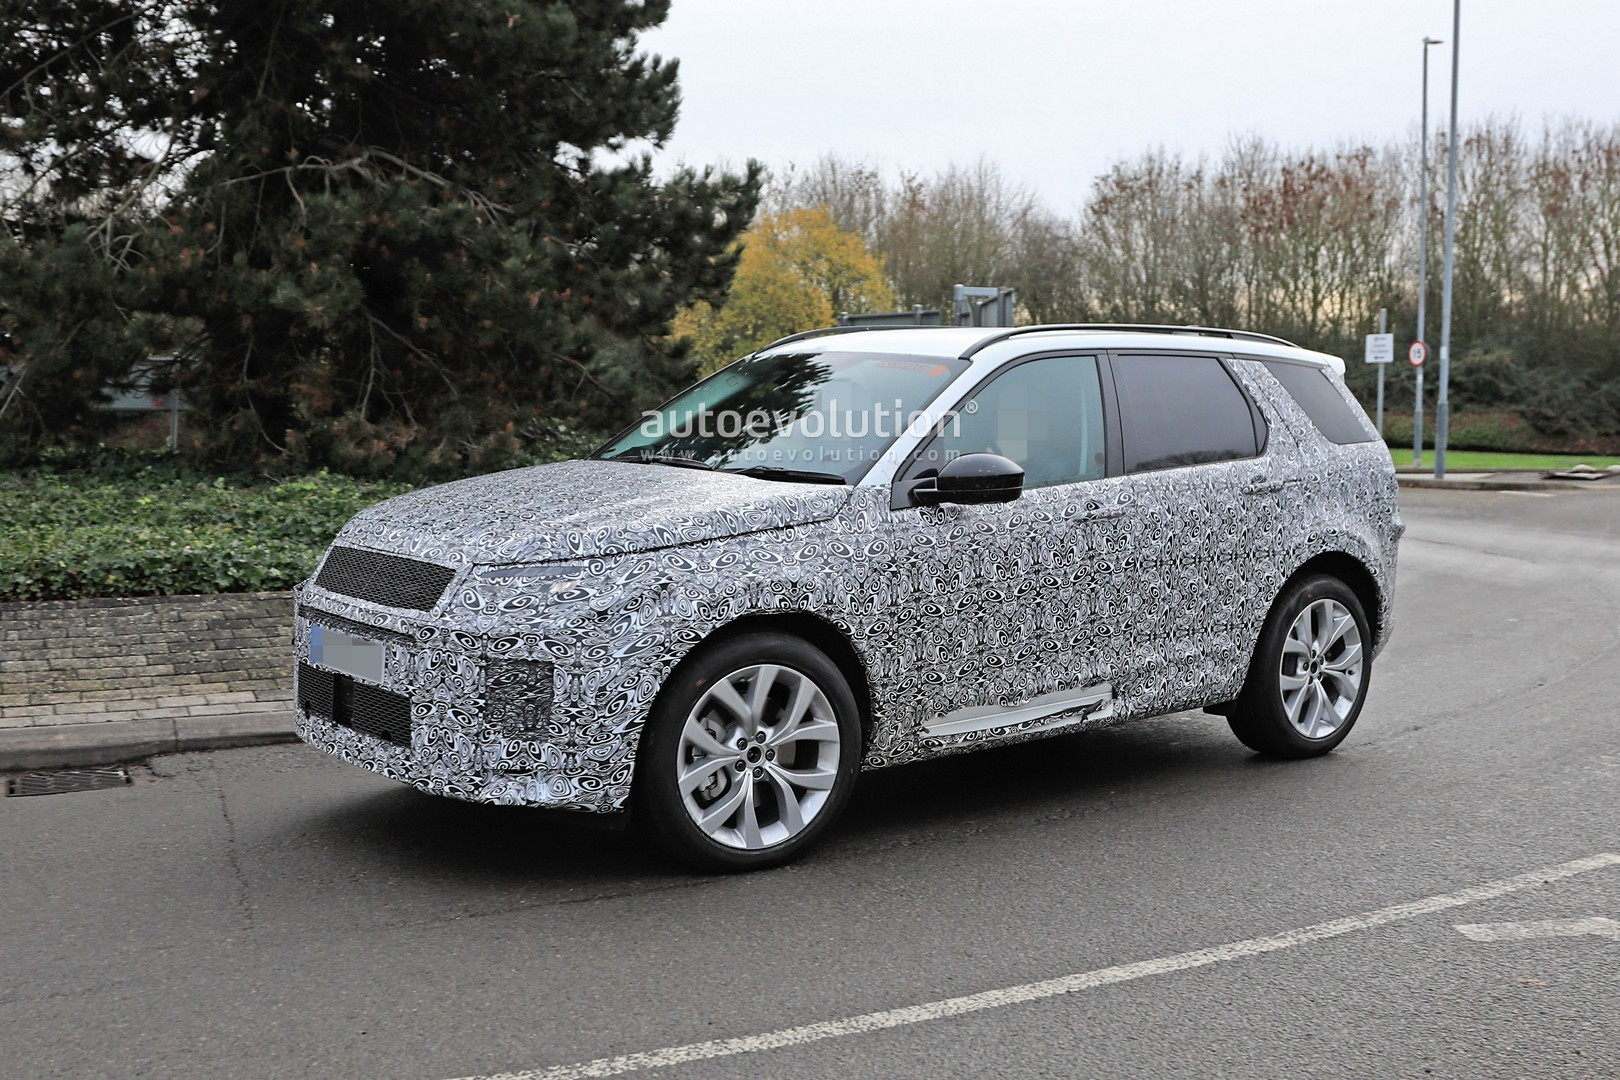 2020 Land Rover Discovery Sport Spied In Uk With Full